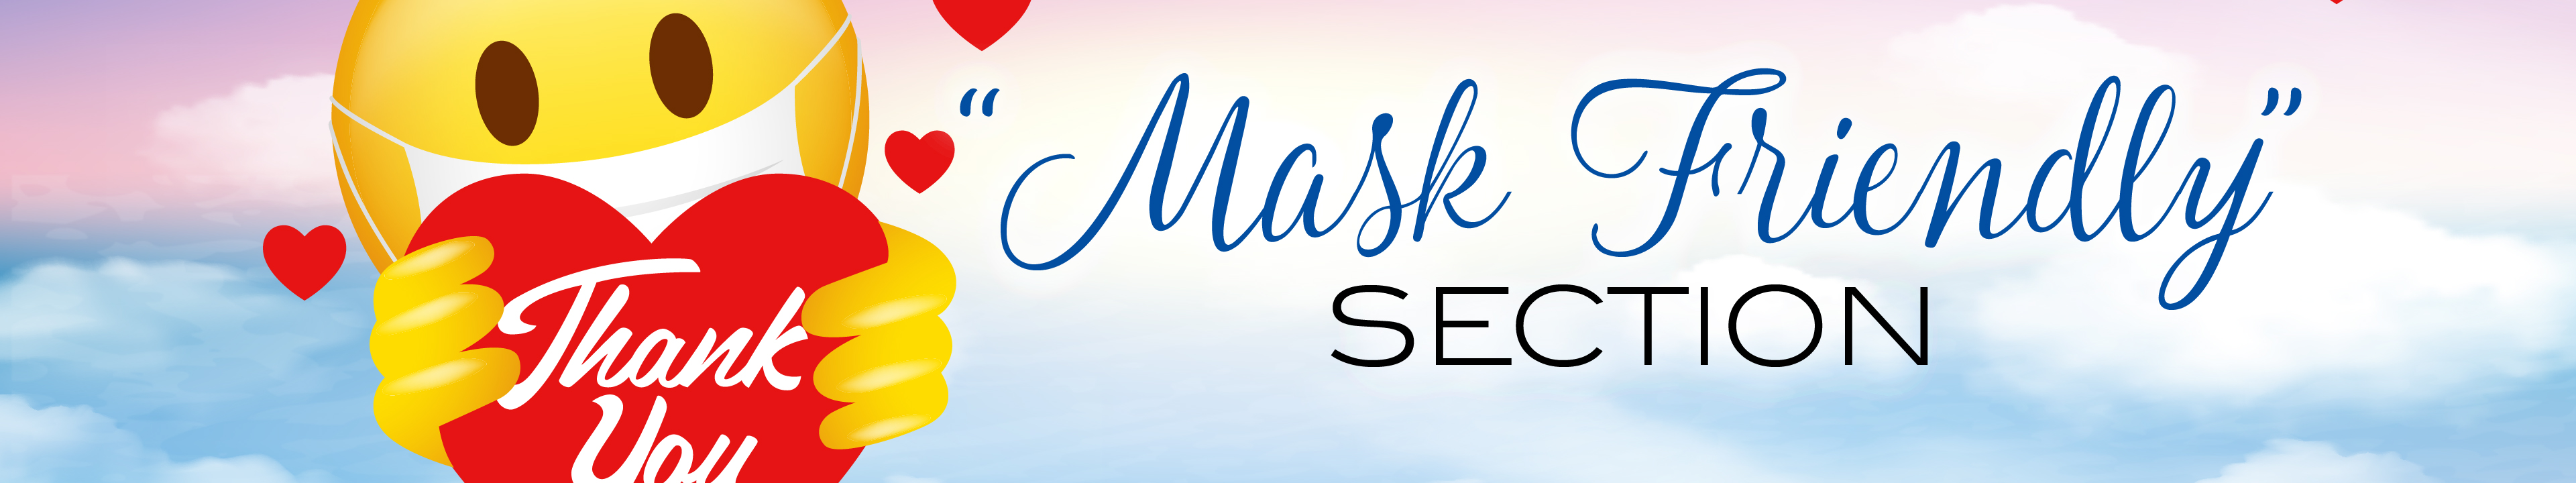 mask-friendly-section-10brd-dq2020-slim-banner2x-100